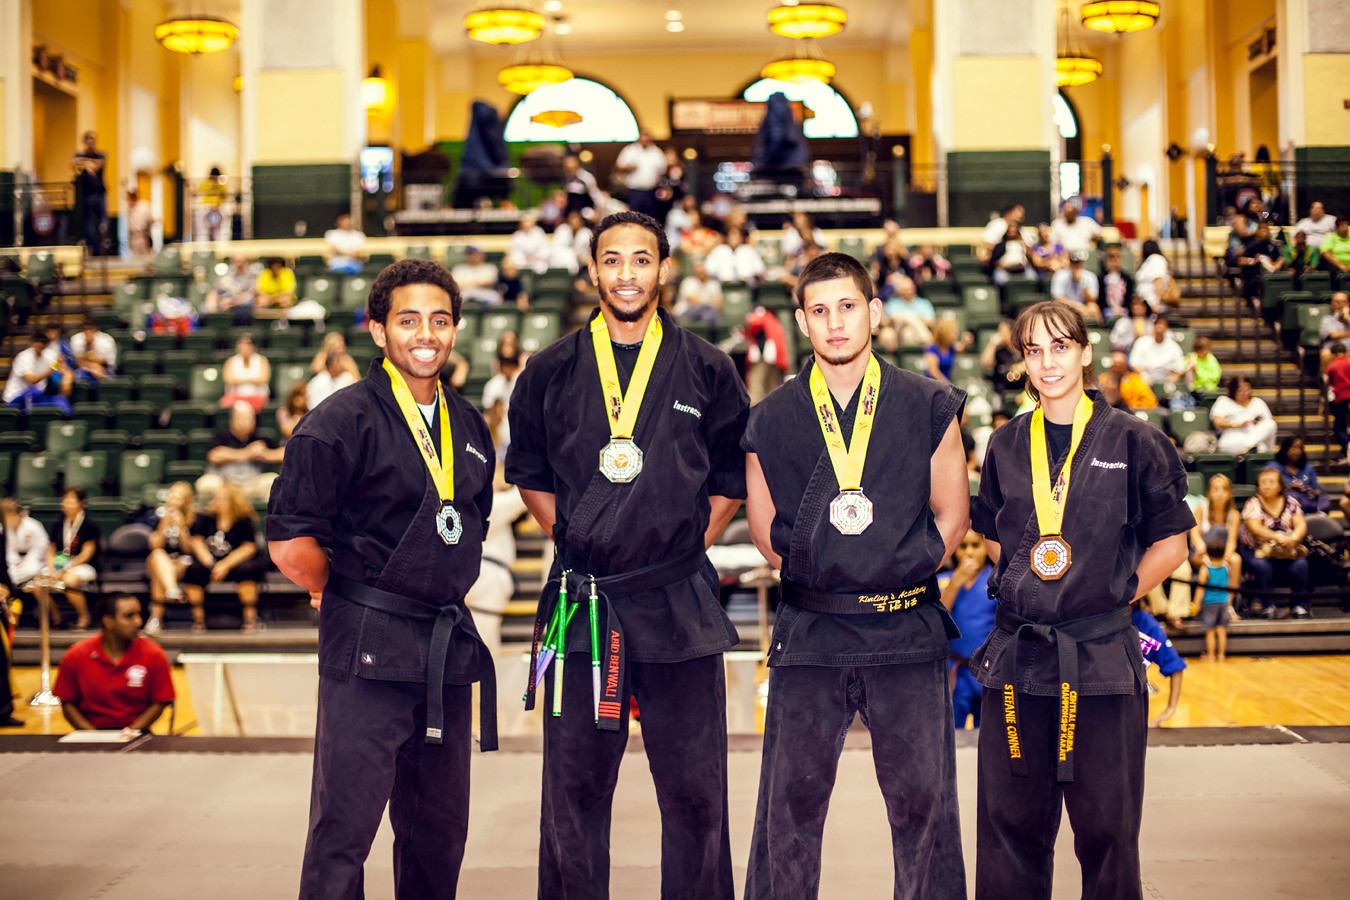 international-martial-arts-festival-nationals-25